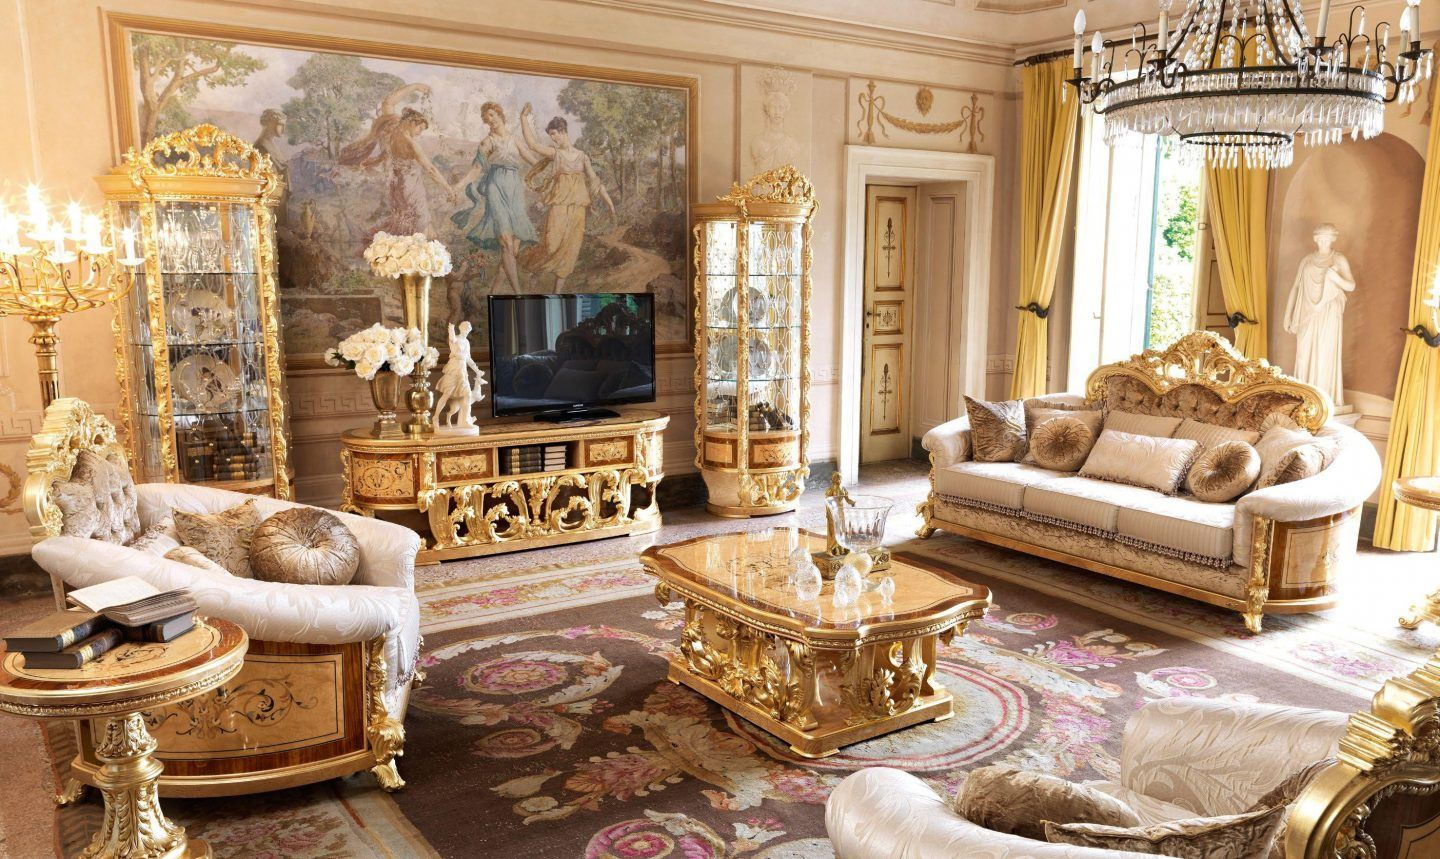 Great example of royal and pompous interior decoration with golden inlays and furniture in the living